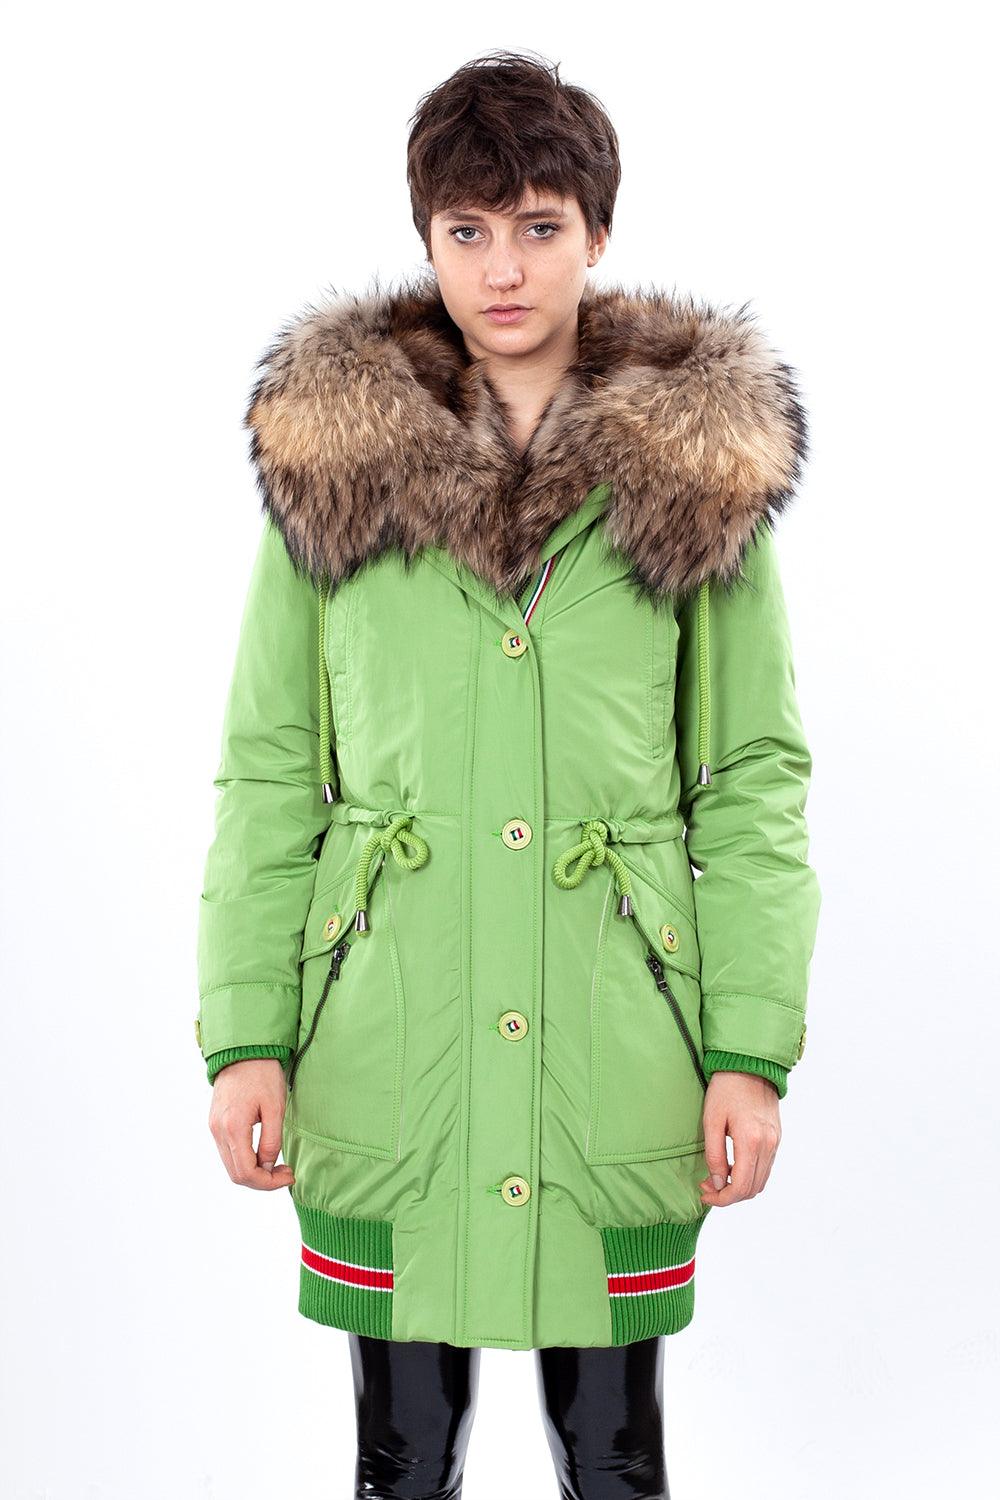 Light Green Midi Parka Main Fabric is Waterproof / Raincoat Fabric With Finnraccoon